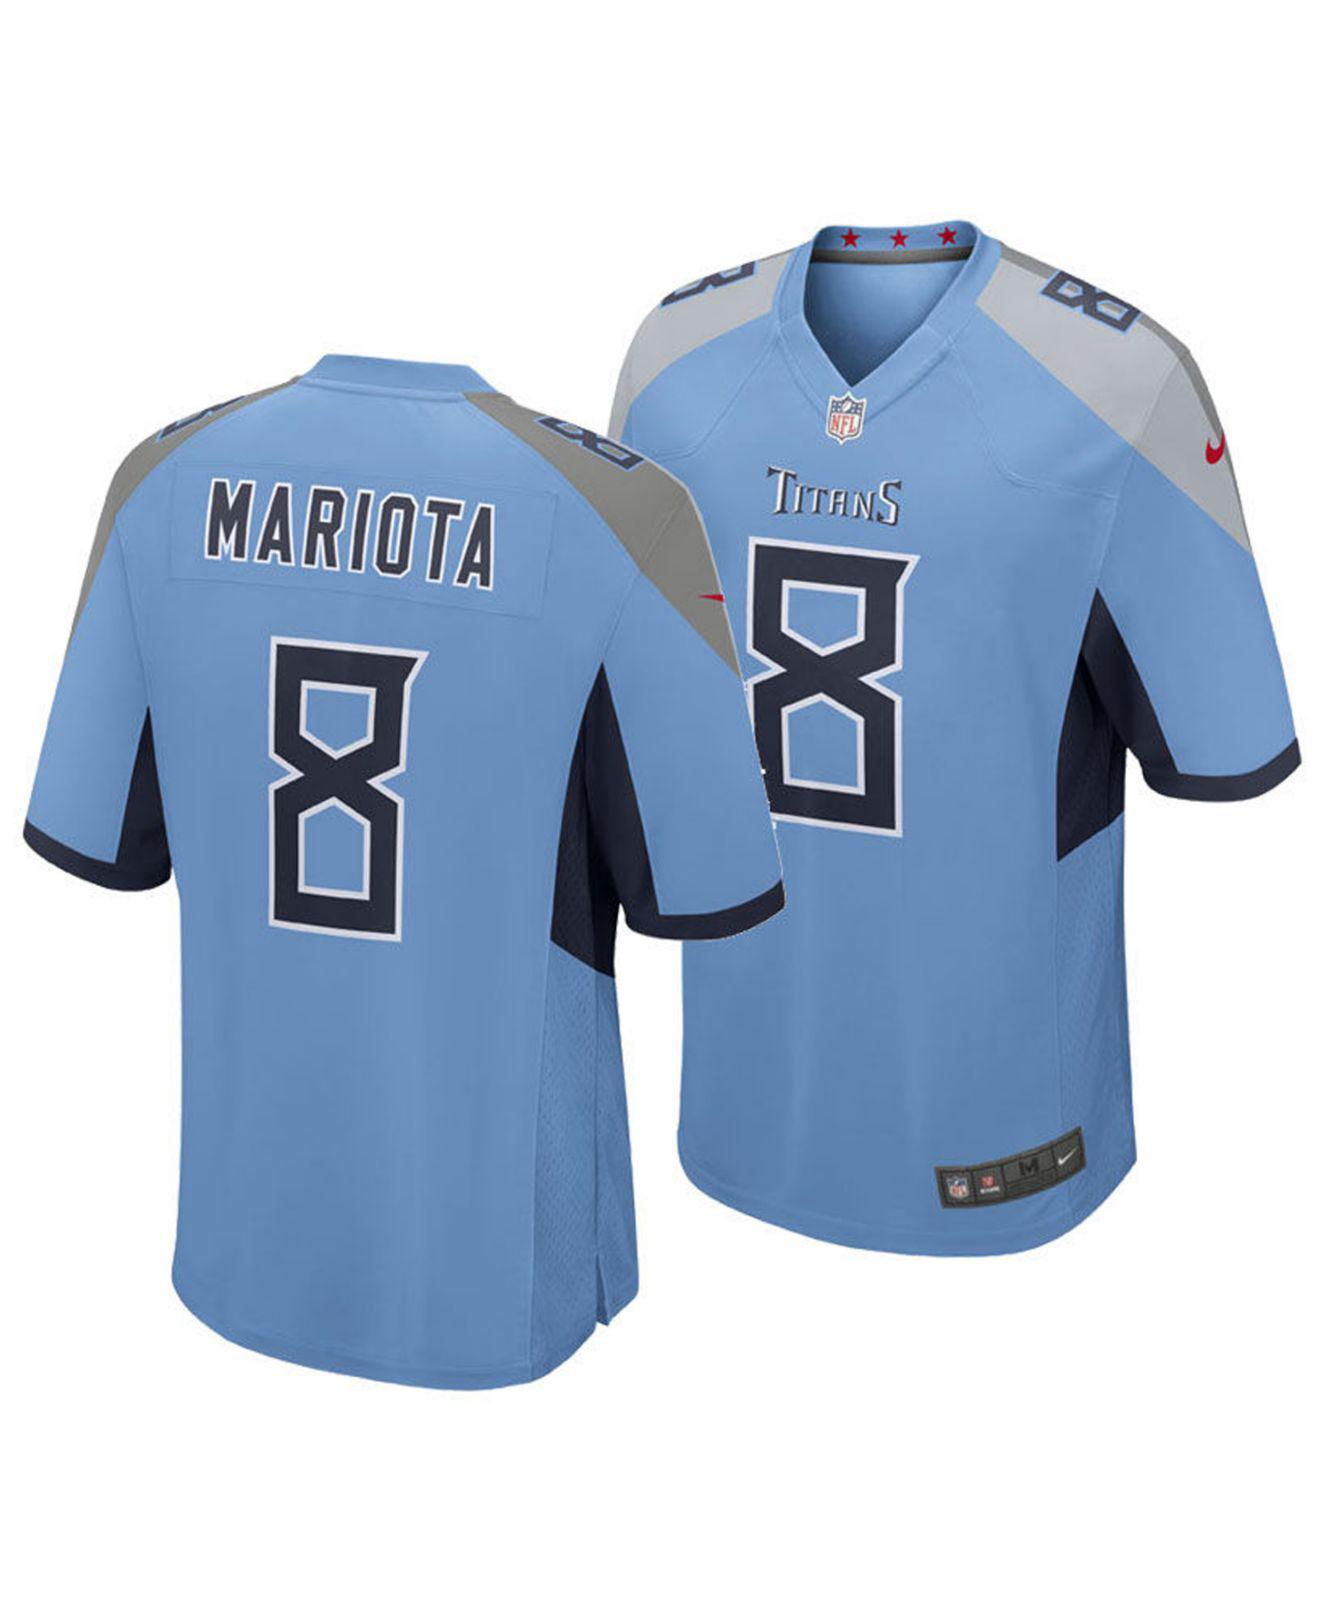 Lyst - Nike Marcus Mariota Tennessee Titans Game Jersey in Blue for Men 11ac4e699